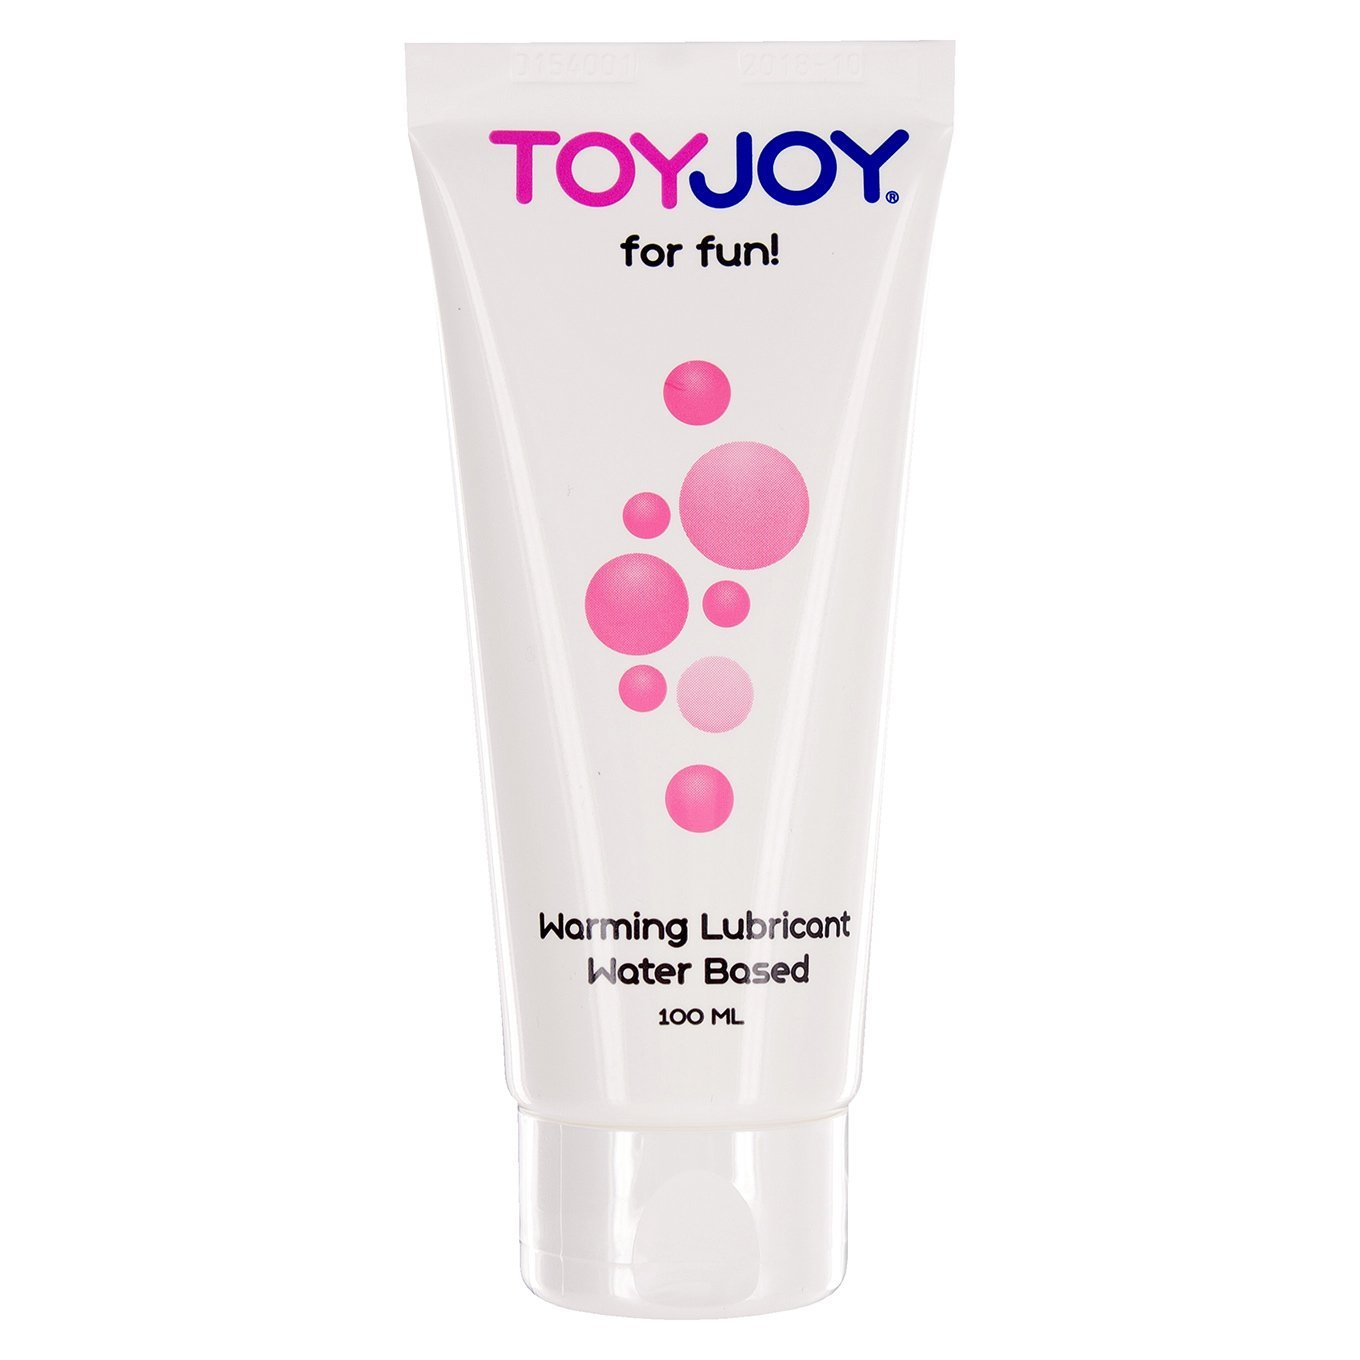 ToyJoy - Warming Lubricant Waterbased 100 ml Warming Lube Singapore